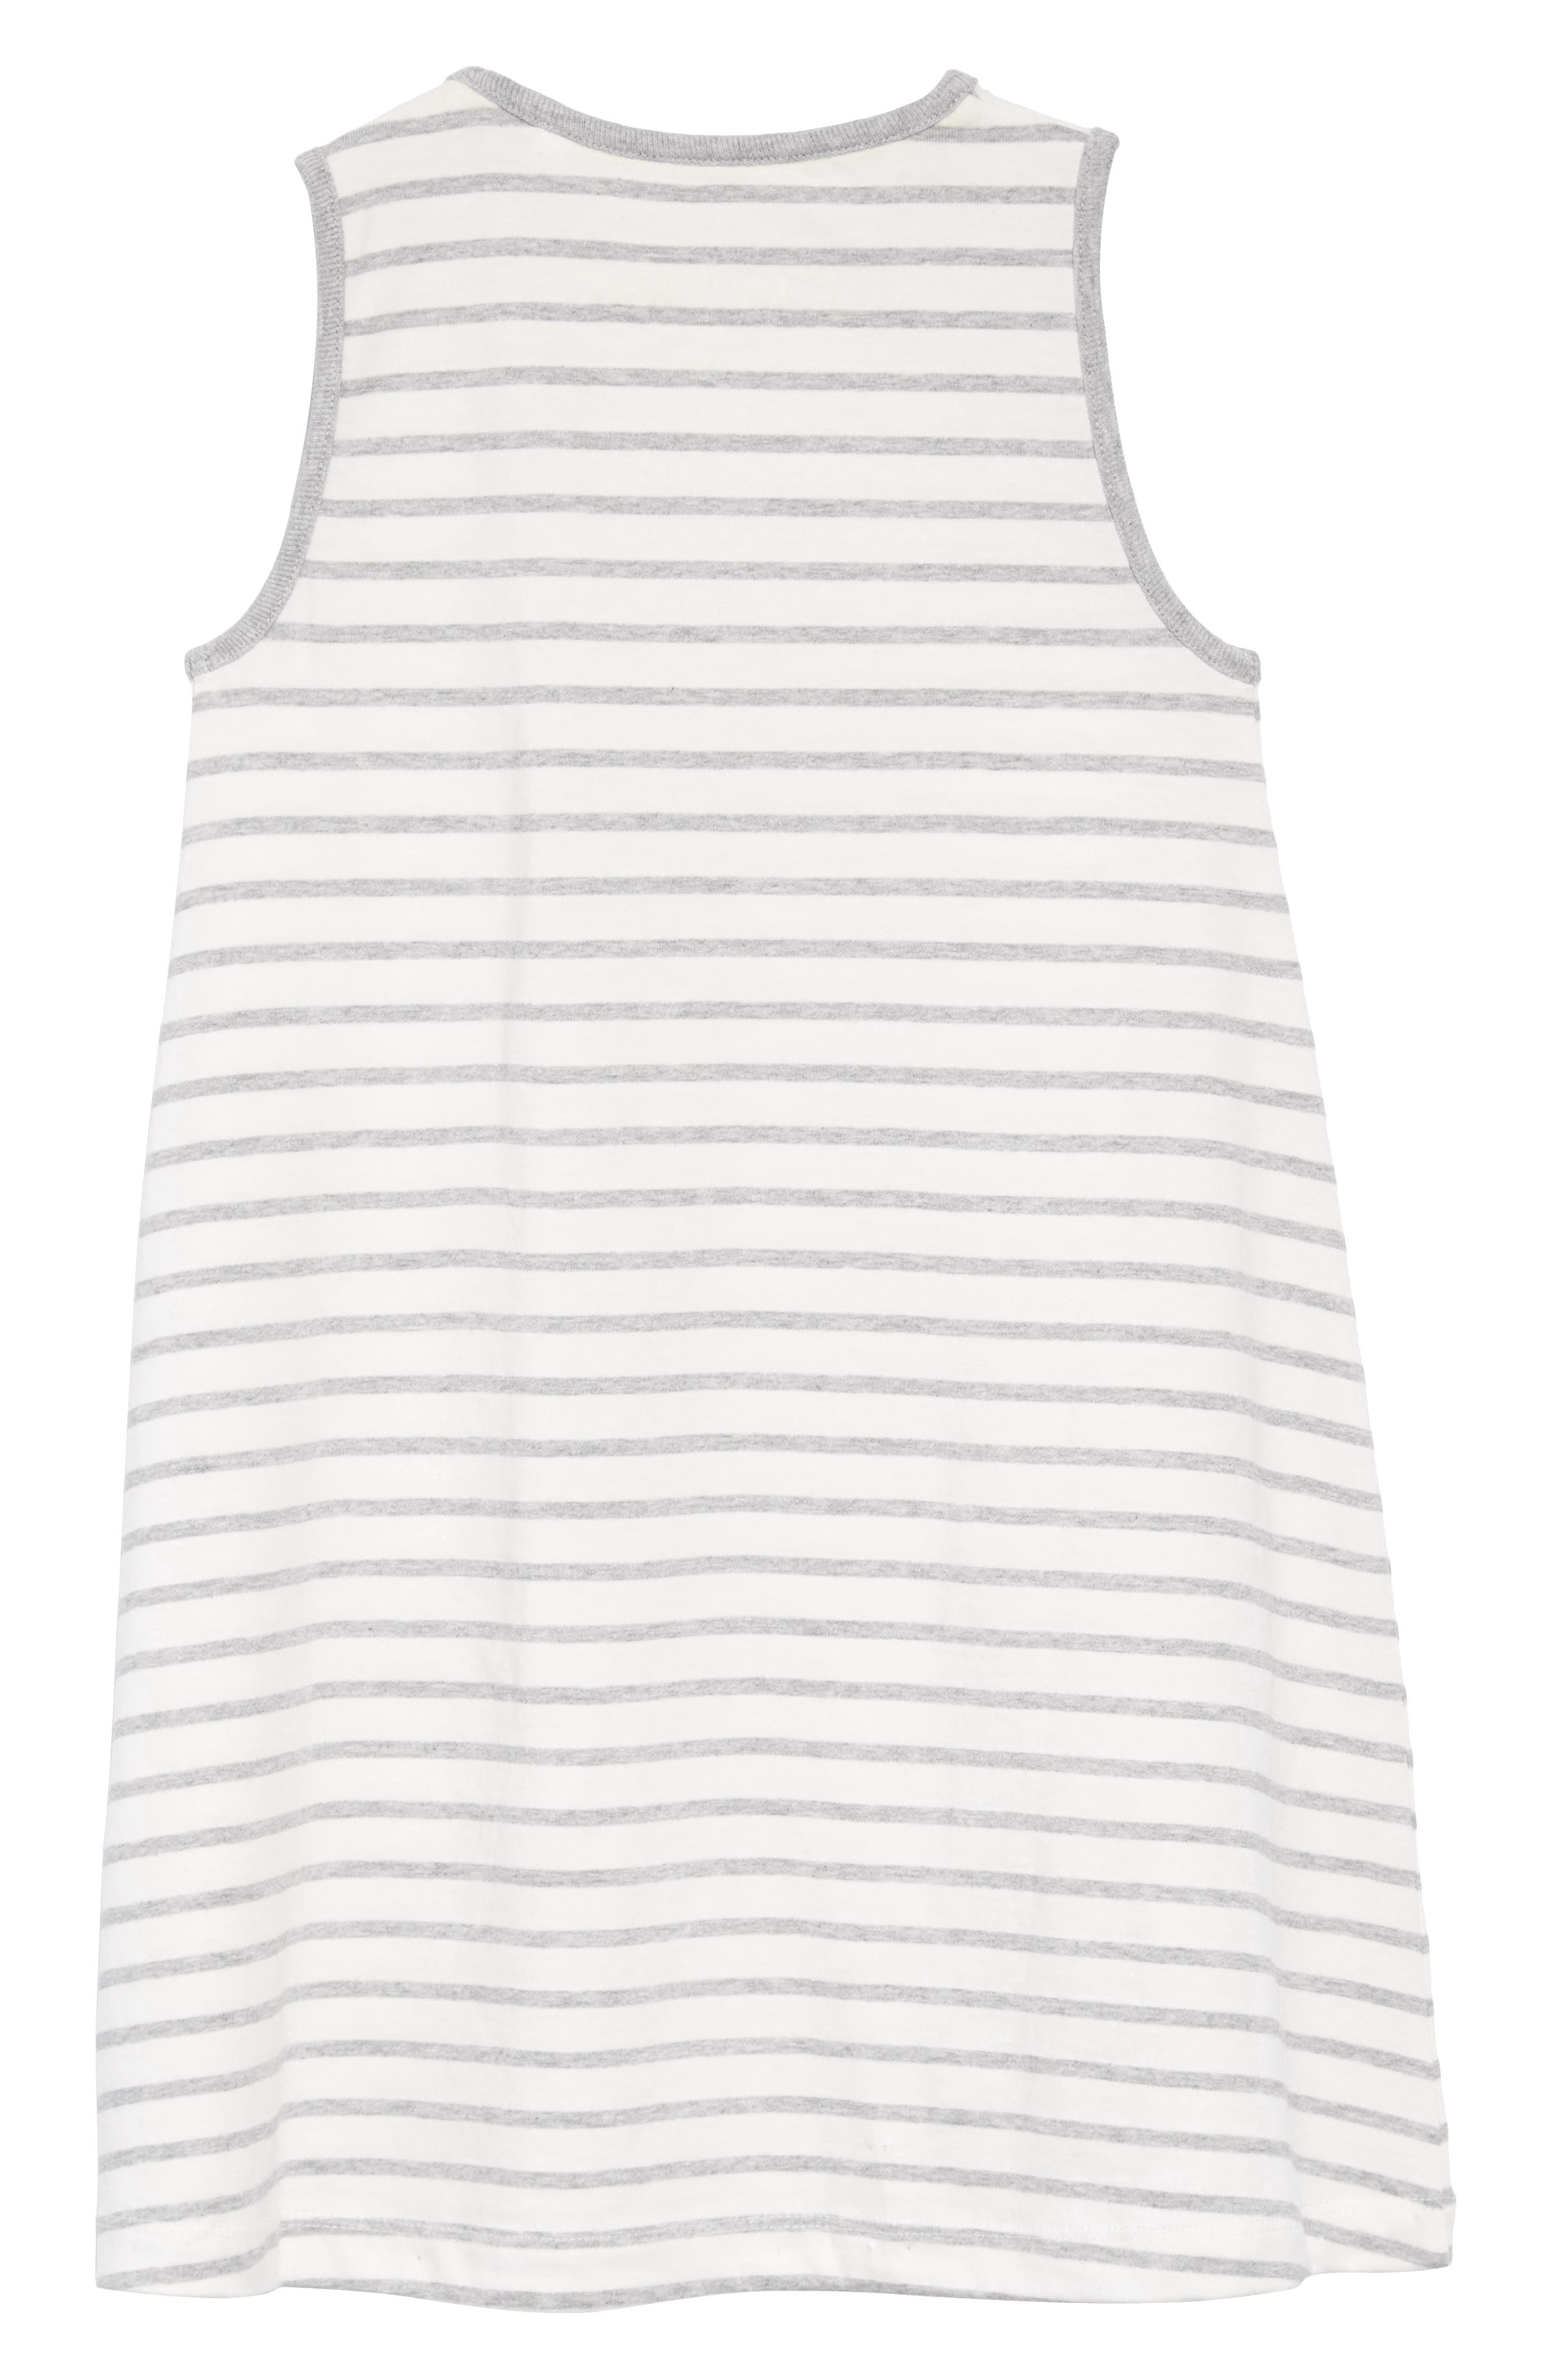 Vacation Appliqué Dress,                             Alternate thumbnail 2, color,                             Ivory/ Grey Marl Stripe